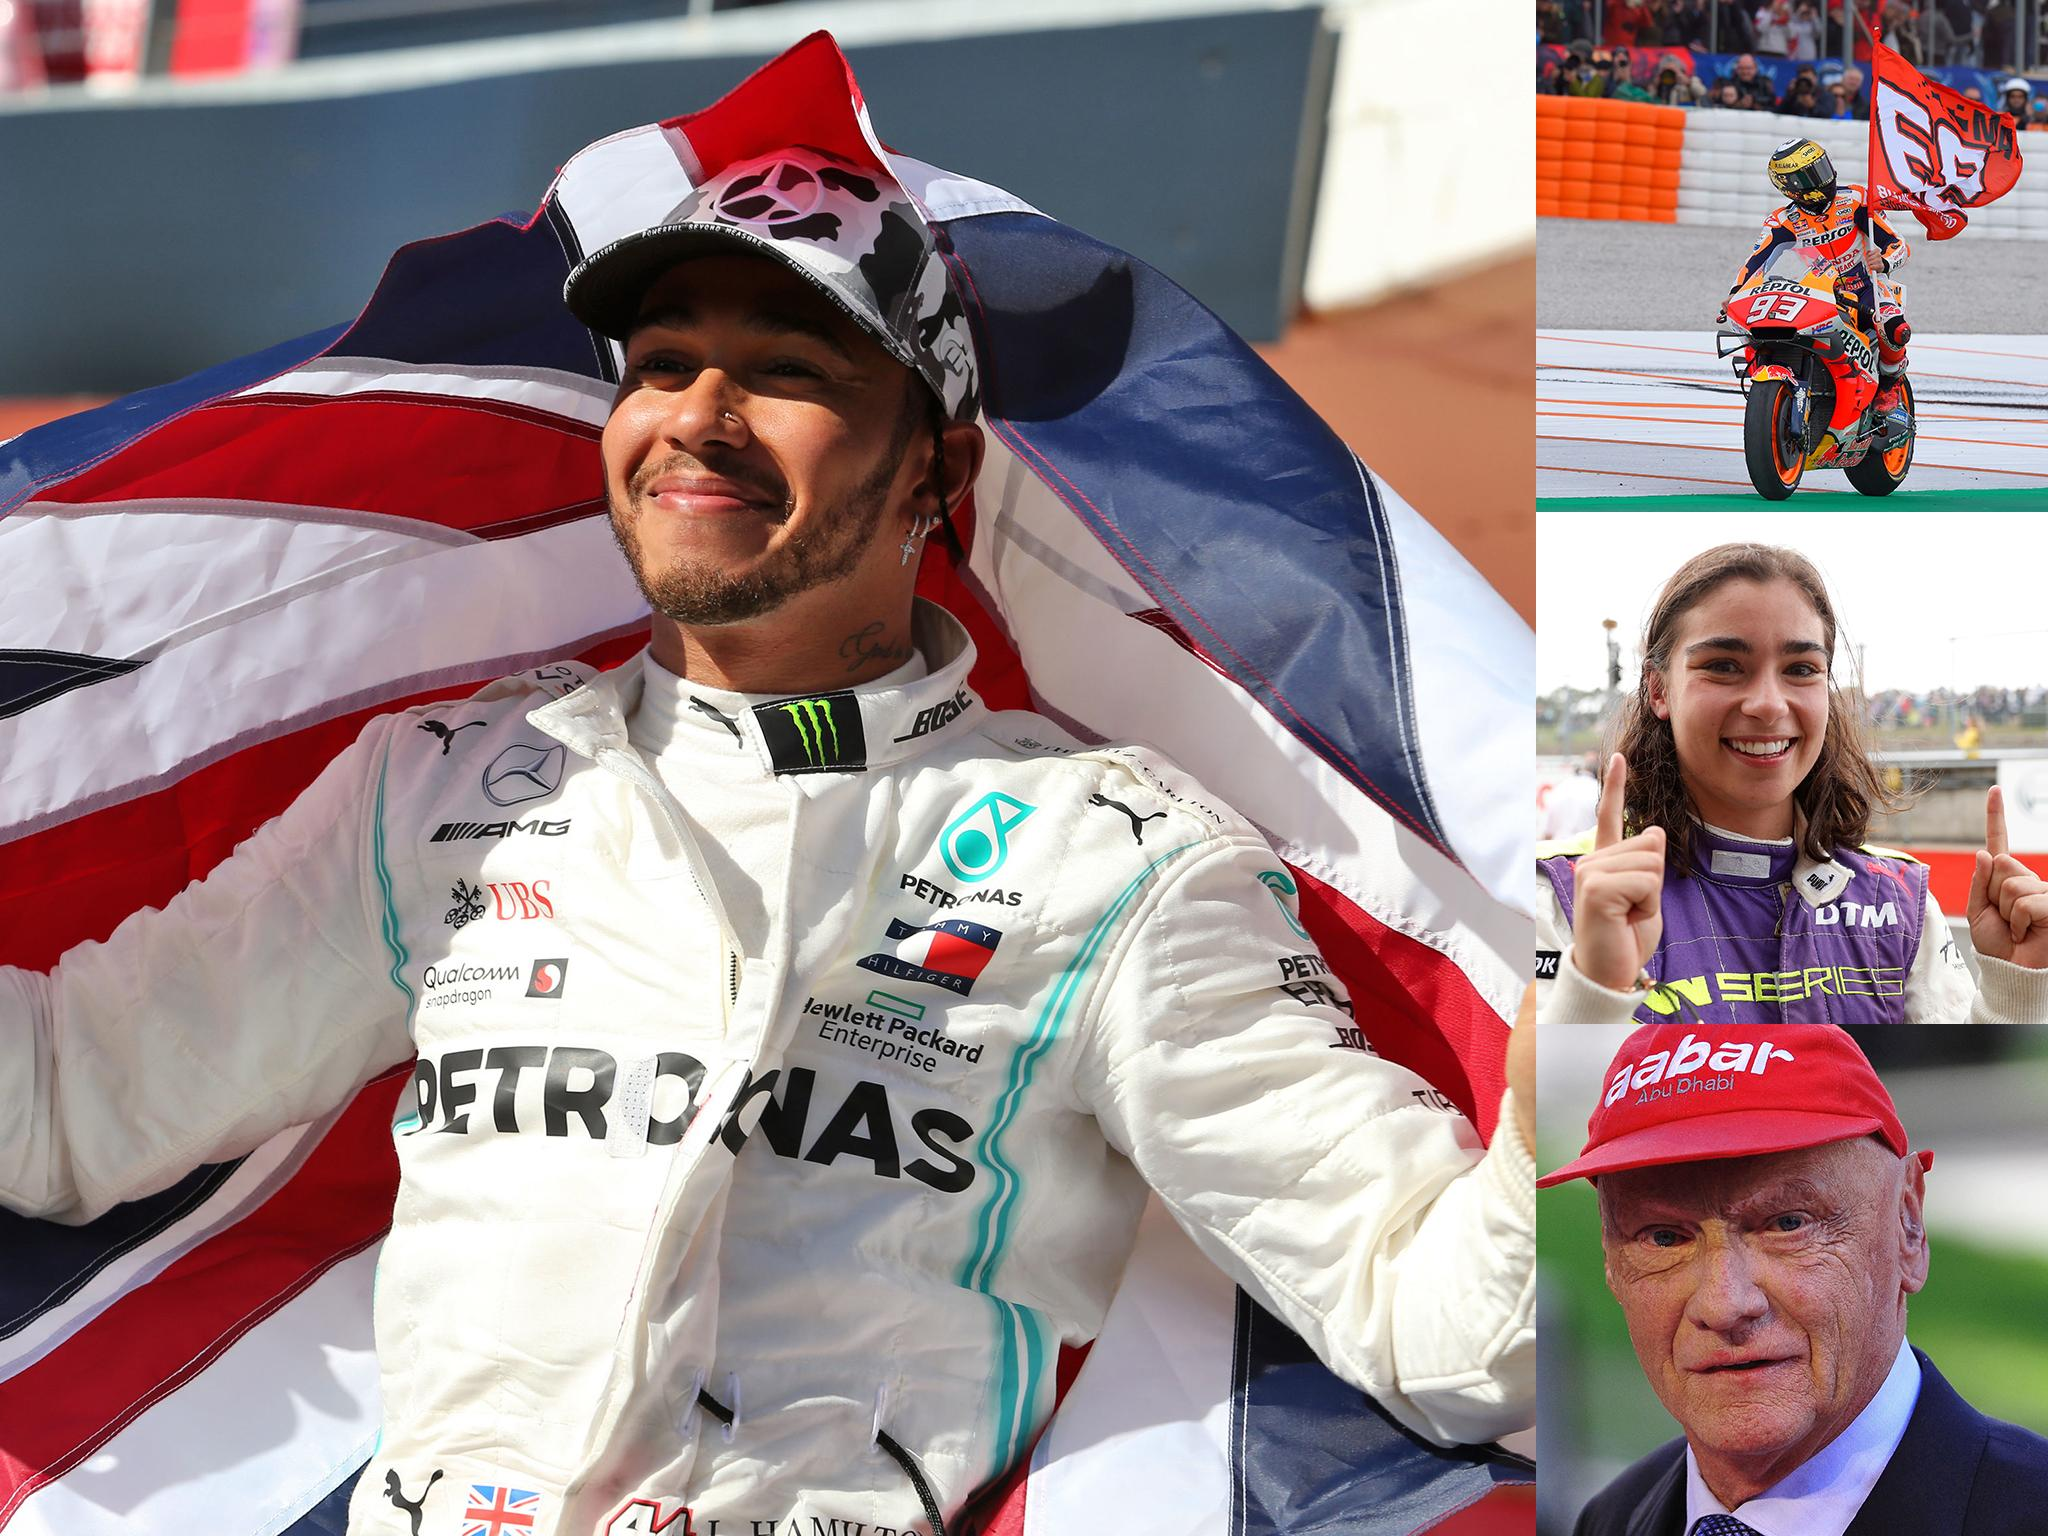 Record-breakers, trailblazers and tragedy: Motorsport in 2019 from F1 to MotoGP and the W Series